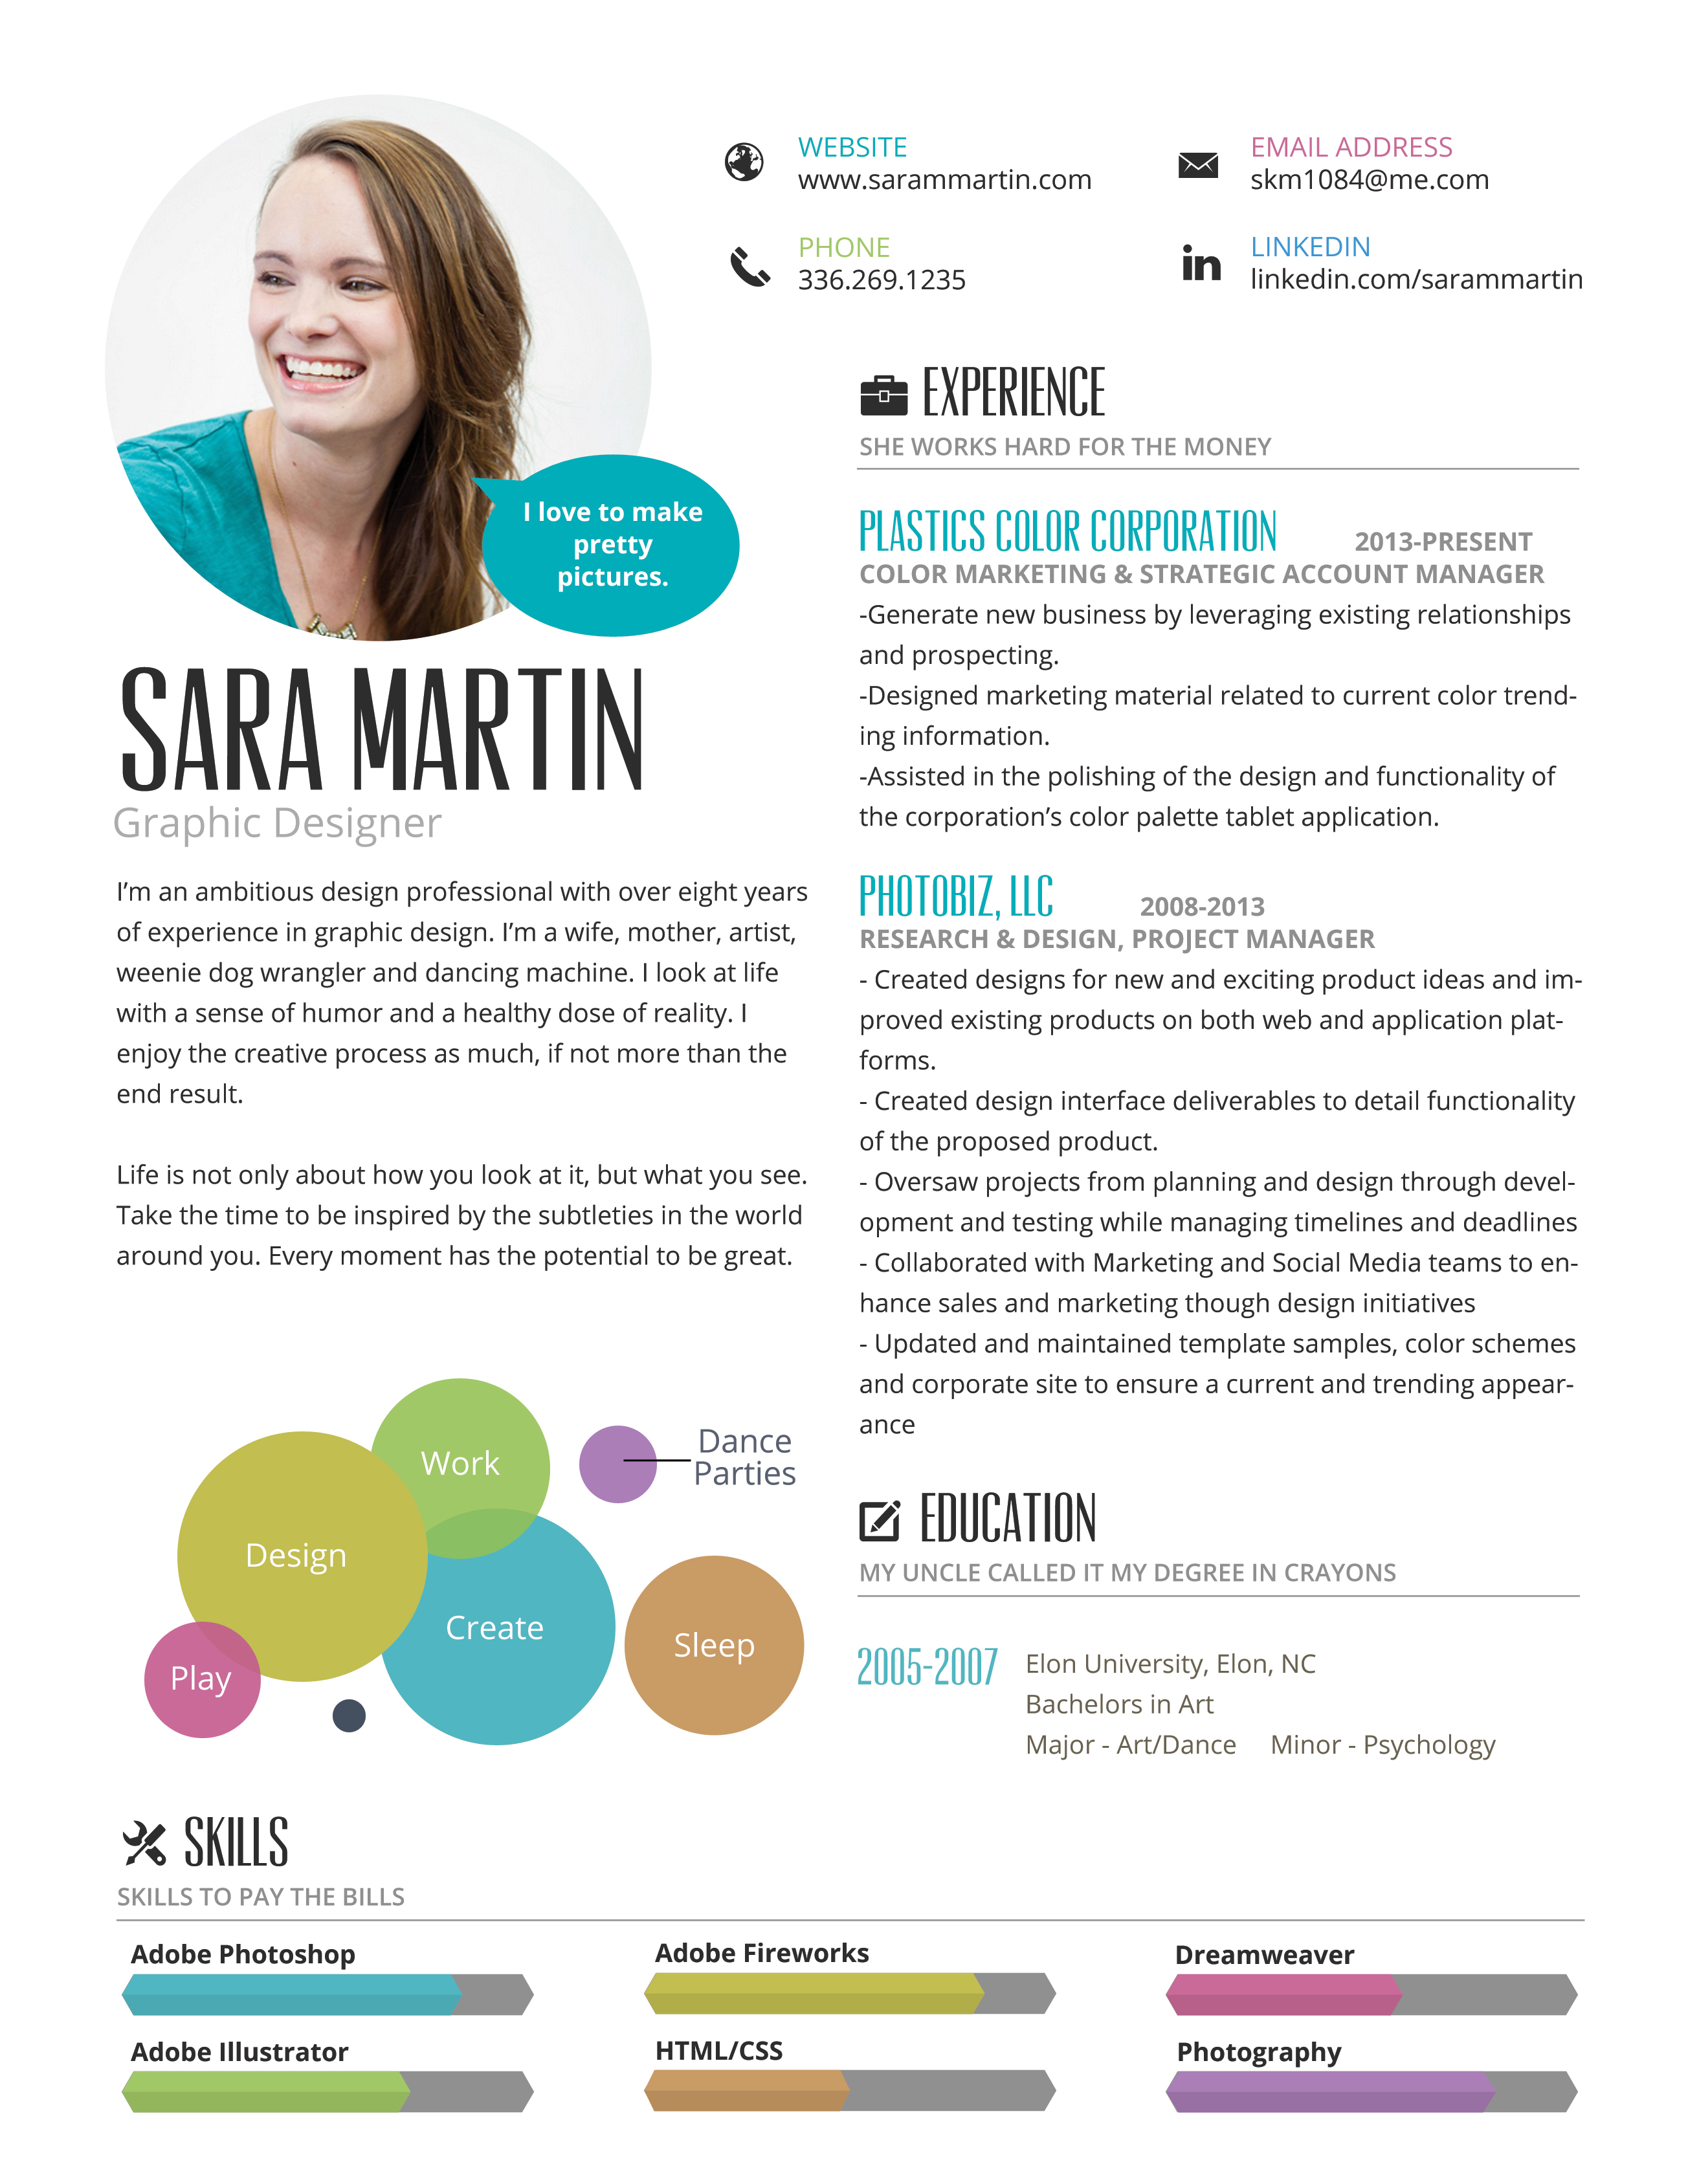 Infographic resume images formation